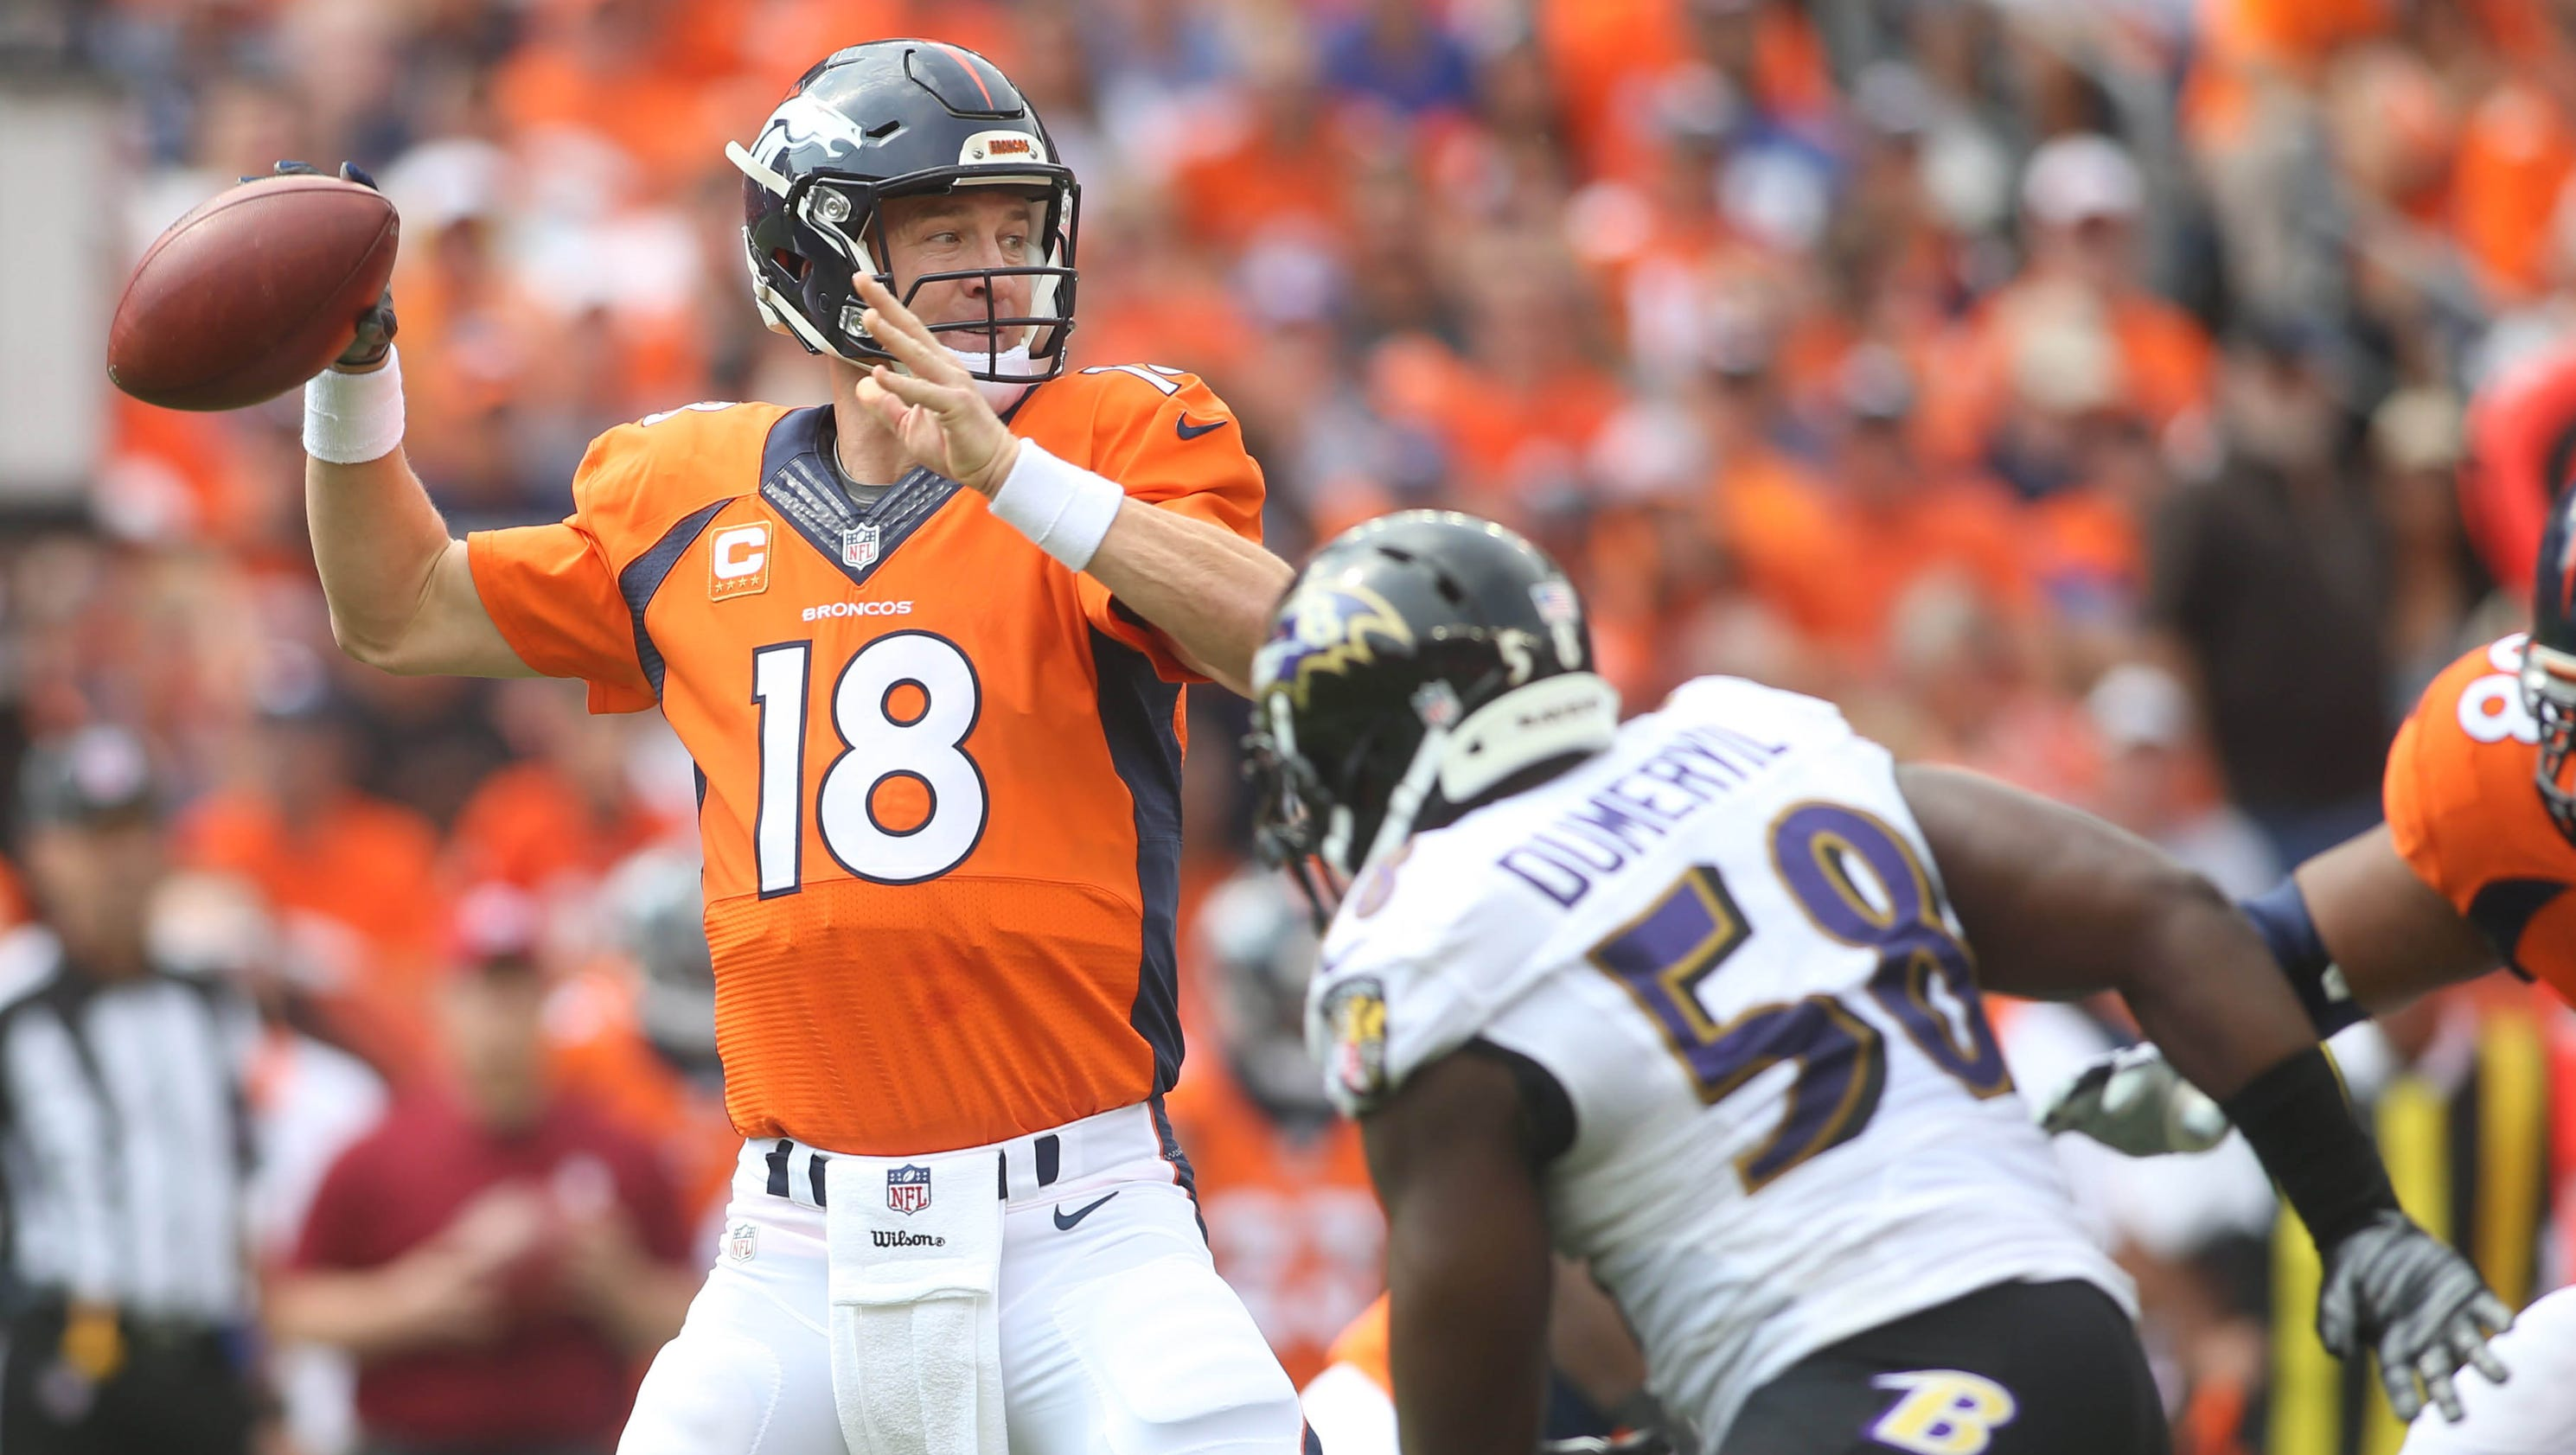 Broncos top Ravens as questions surface for both offenses